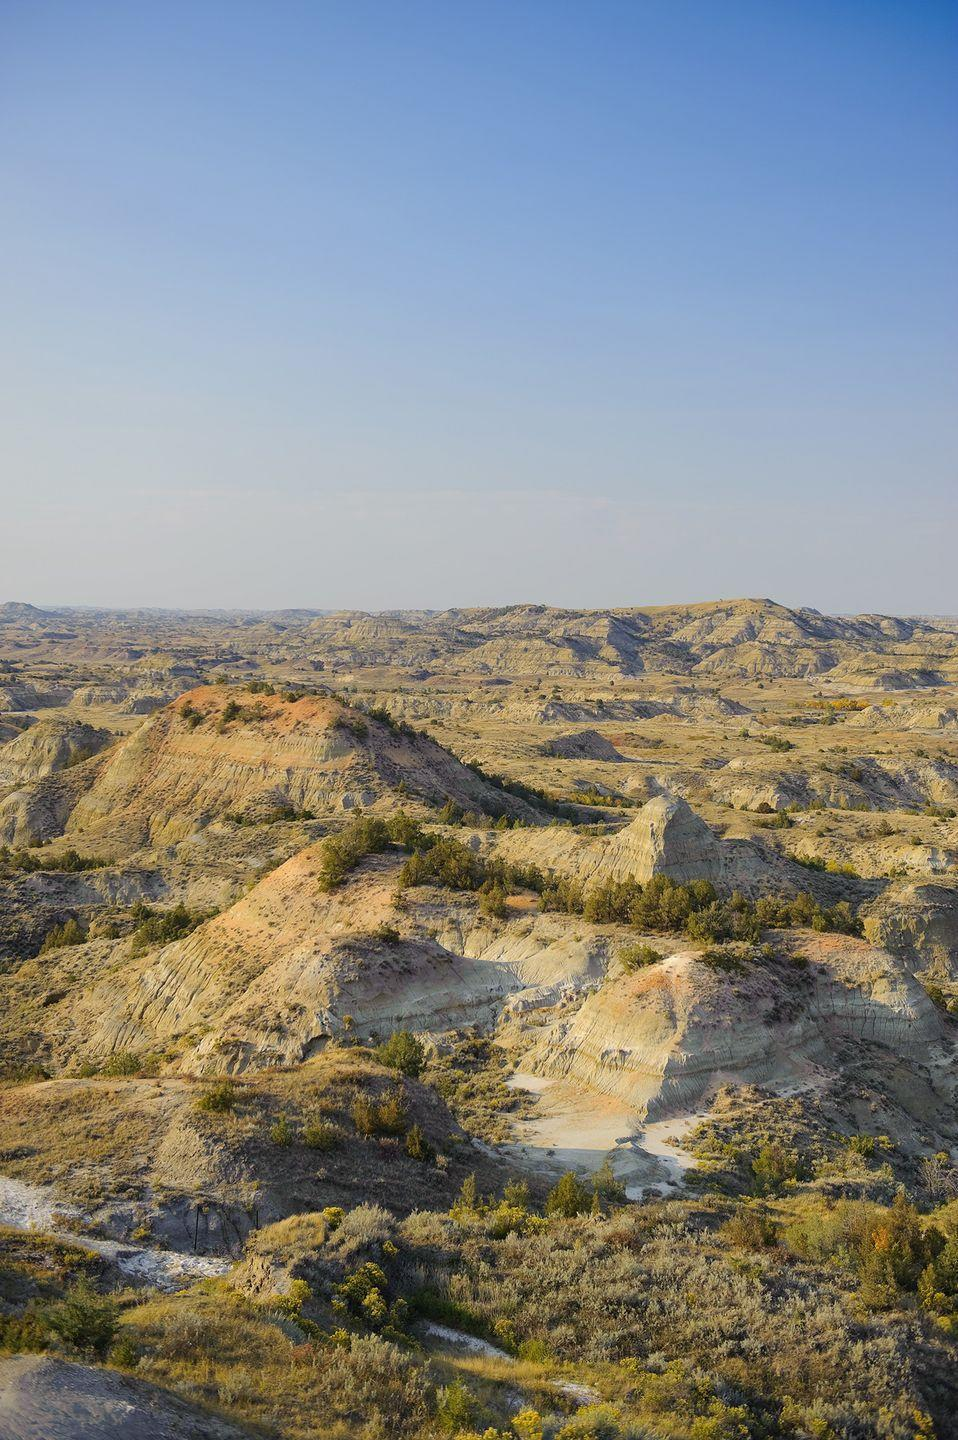 """<p><strong>The Drive: </strong><a href=""""https://www.tripadvisor.com/Attraction_Review-g143052-d144861-Reviews-South_Unit-Theodore_Roosevelt_National_Park_North_Dakota.html"""" rel=""""nofollow noopener"""" target=""""_blank"""" data-ylk=""""slk:Theodore Roosevelt National Park's South Unit"""" class=""""link rapid-noclick-resp"""">Theodore Roosevelt National Park's South Unit</a></p><p><strong>The Scene:</strong> In just 36 miles, loop around the south park entrance to take in incredible views of bison, deer, antelopes, and prairie dogs. Your passengers might even spot a bald eagle in the sky! </p><p><strong>The Pit-Stop:</strong> Bring your camera and head for nearby <a href=""""https://www.tripadvisor.com/LocationPhotoDirectLink-g60973-i22200788-Medora_North_Dakota.html"""" rel=""""nofollow noopener"""" target=""""_blank"""" data-ylk=""""slk:Wind Canyon"""" class=""""link rapid-noclick-resp"""">Wind Canyon</a>, one of the most photographed places in the park. </p>"""